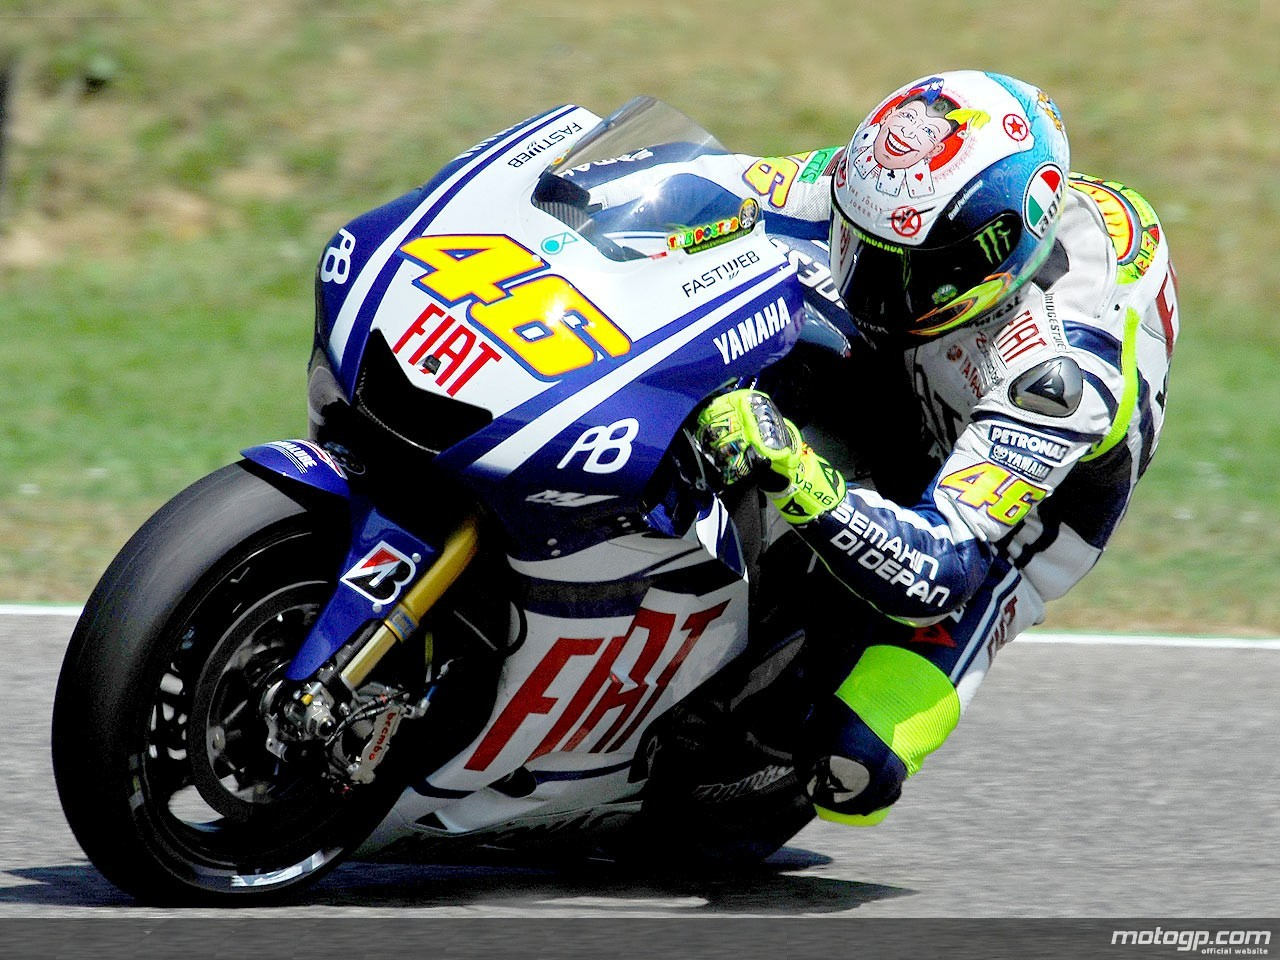 Description Valentino Rossi Wallpaper HD is a hi res Wallpaper for pc 1280x960